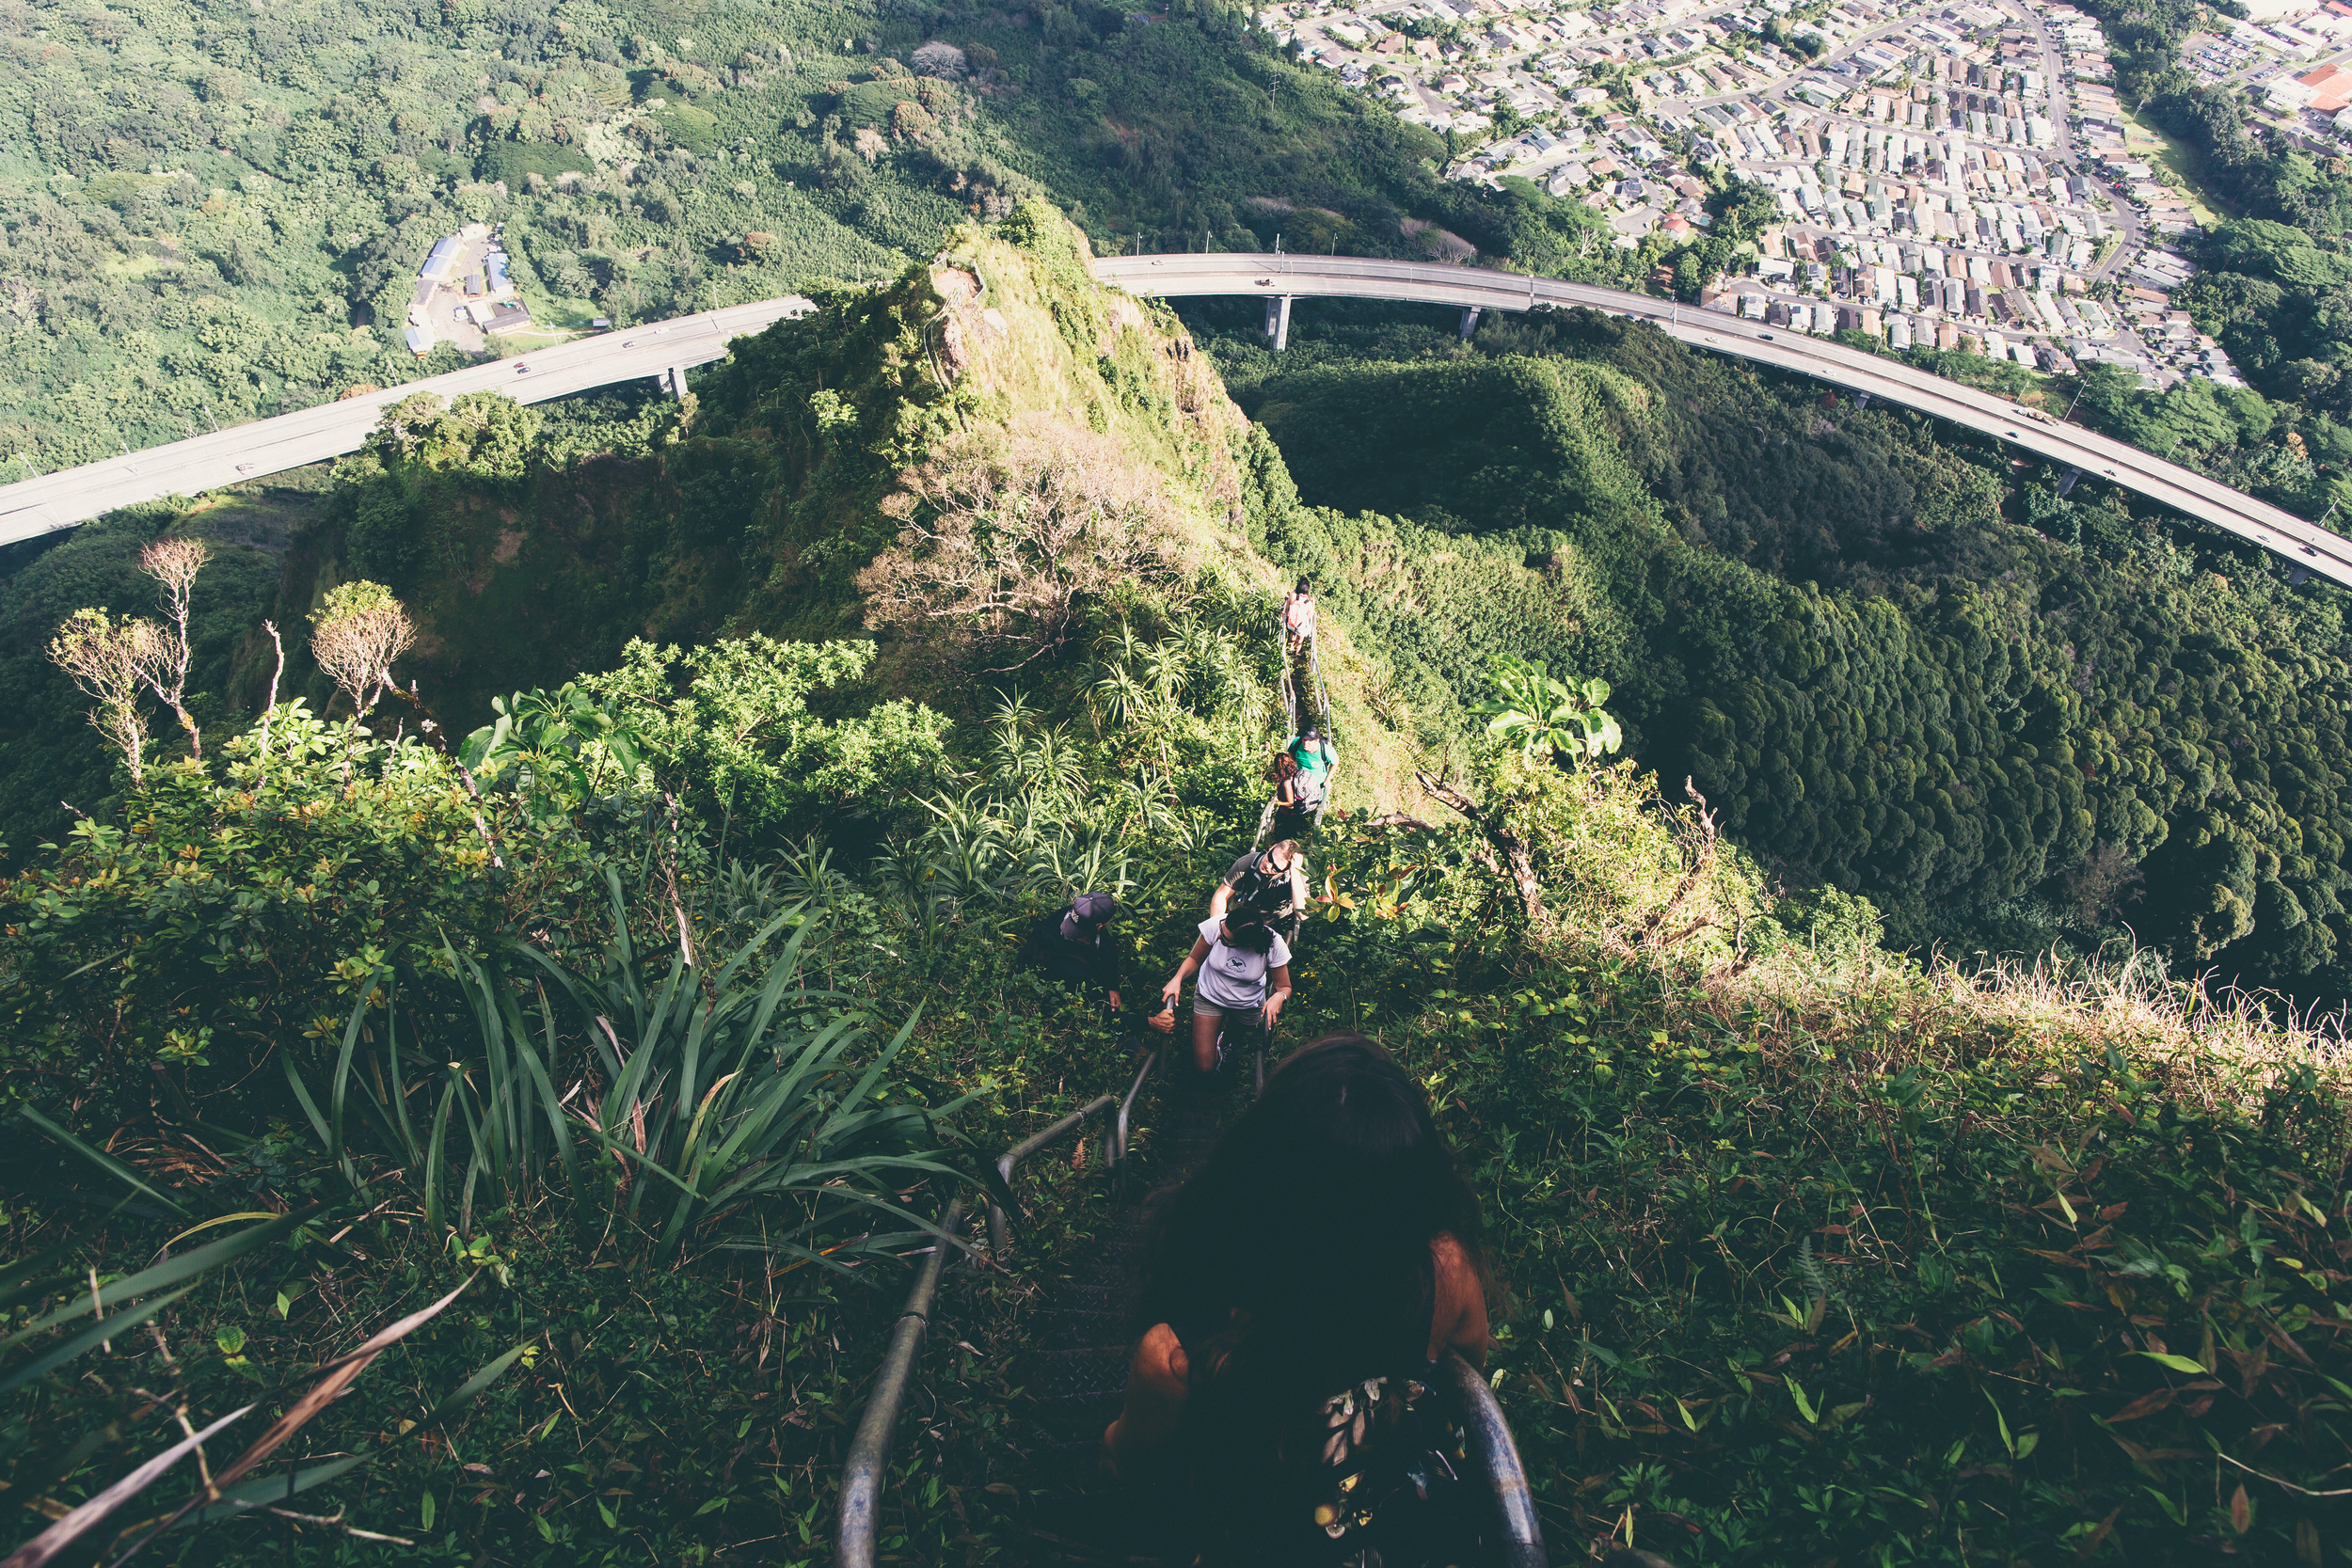 Haiku Stairs traffic jam. Four hikers doing a mid-day hike. HOT! (as in temperature, not as in an attractive way)